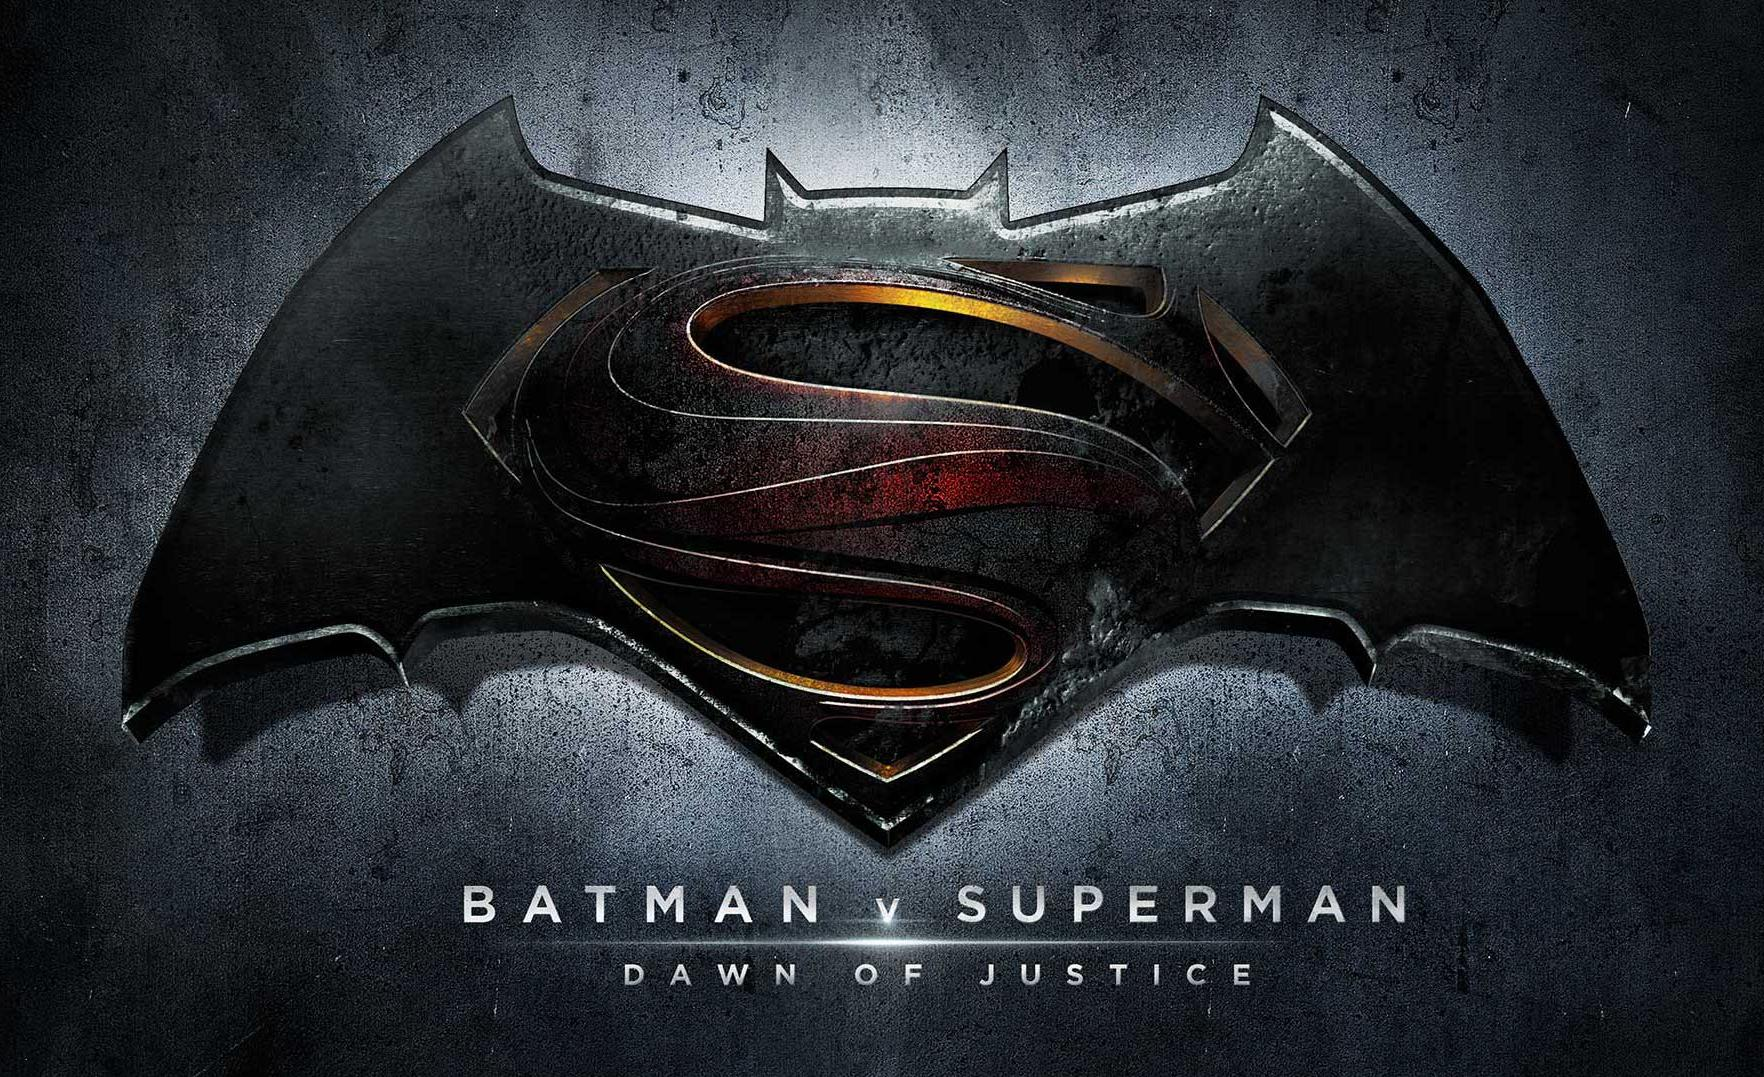 'Batman v Superman: Dawn of Justice' Promo Logo